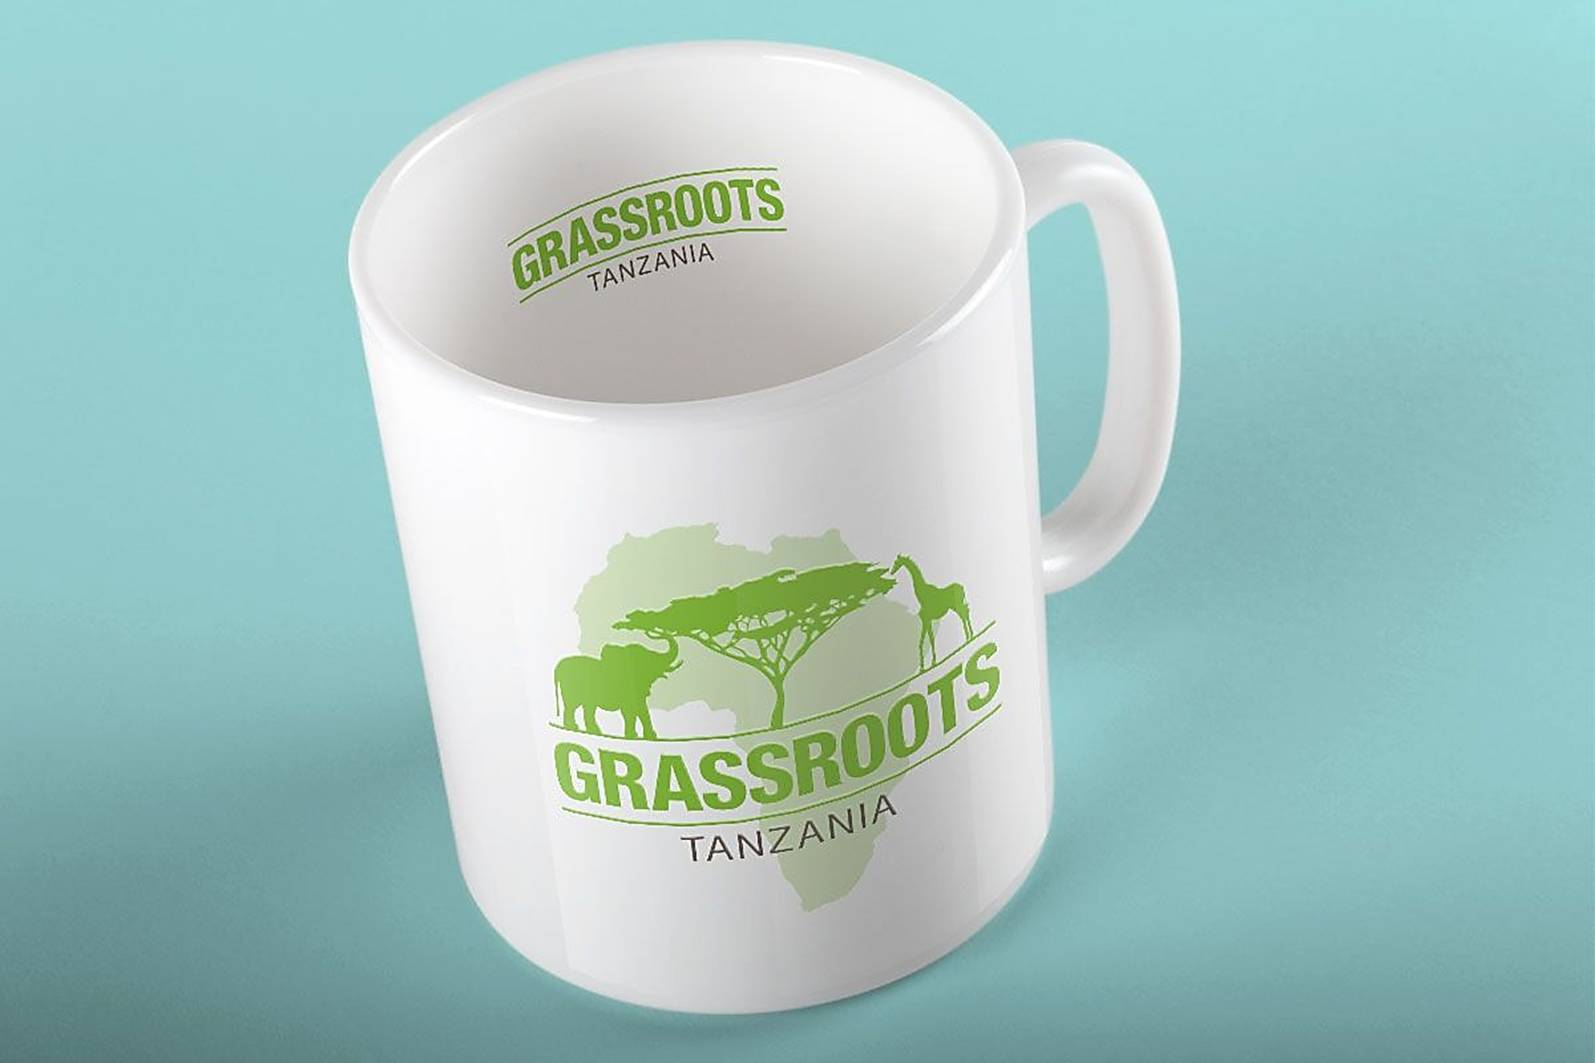 illustrated logo on mug